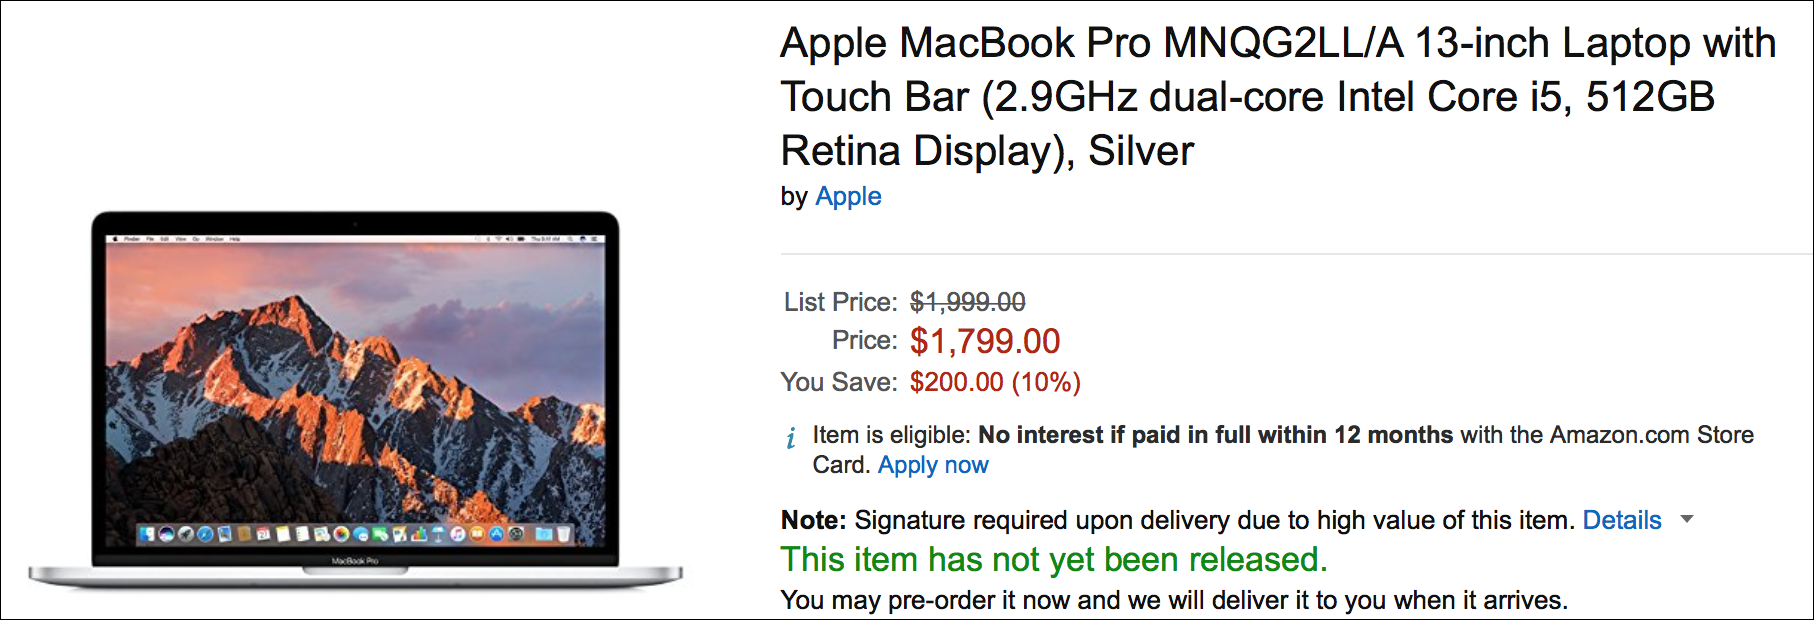 Amazon macbook pro